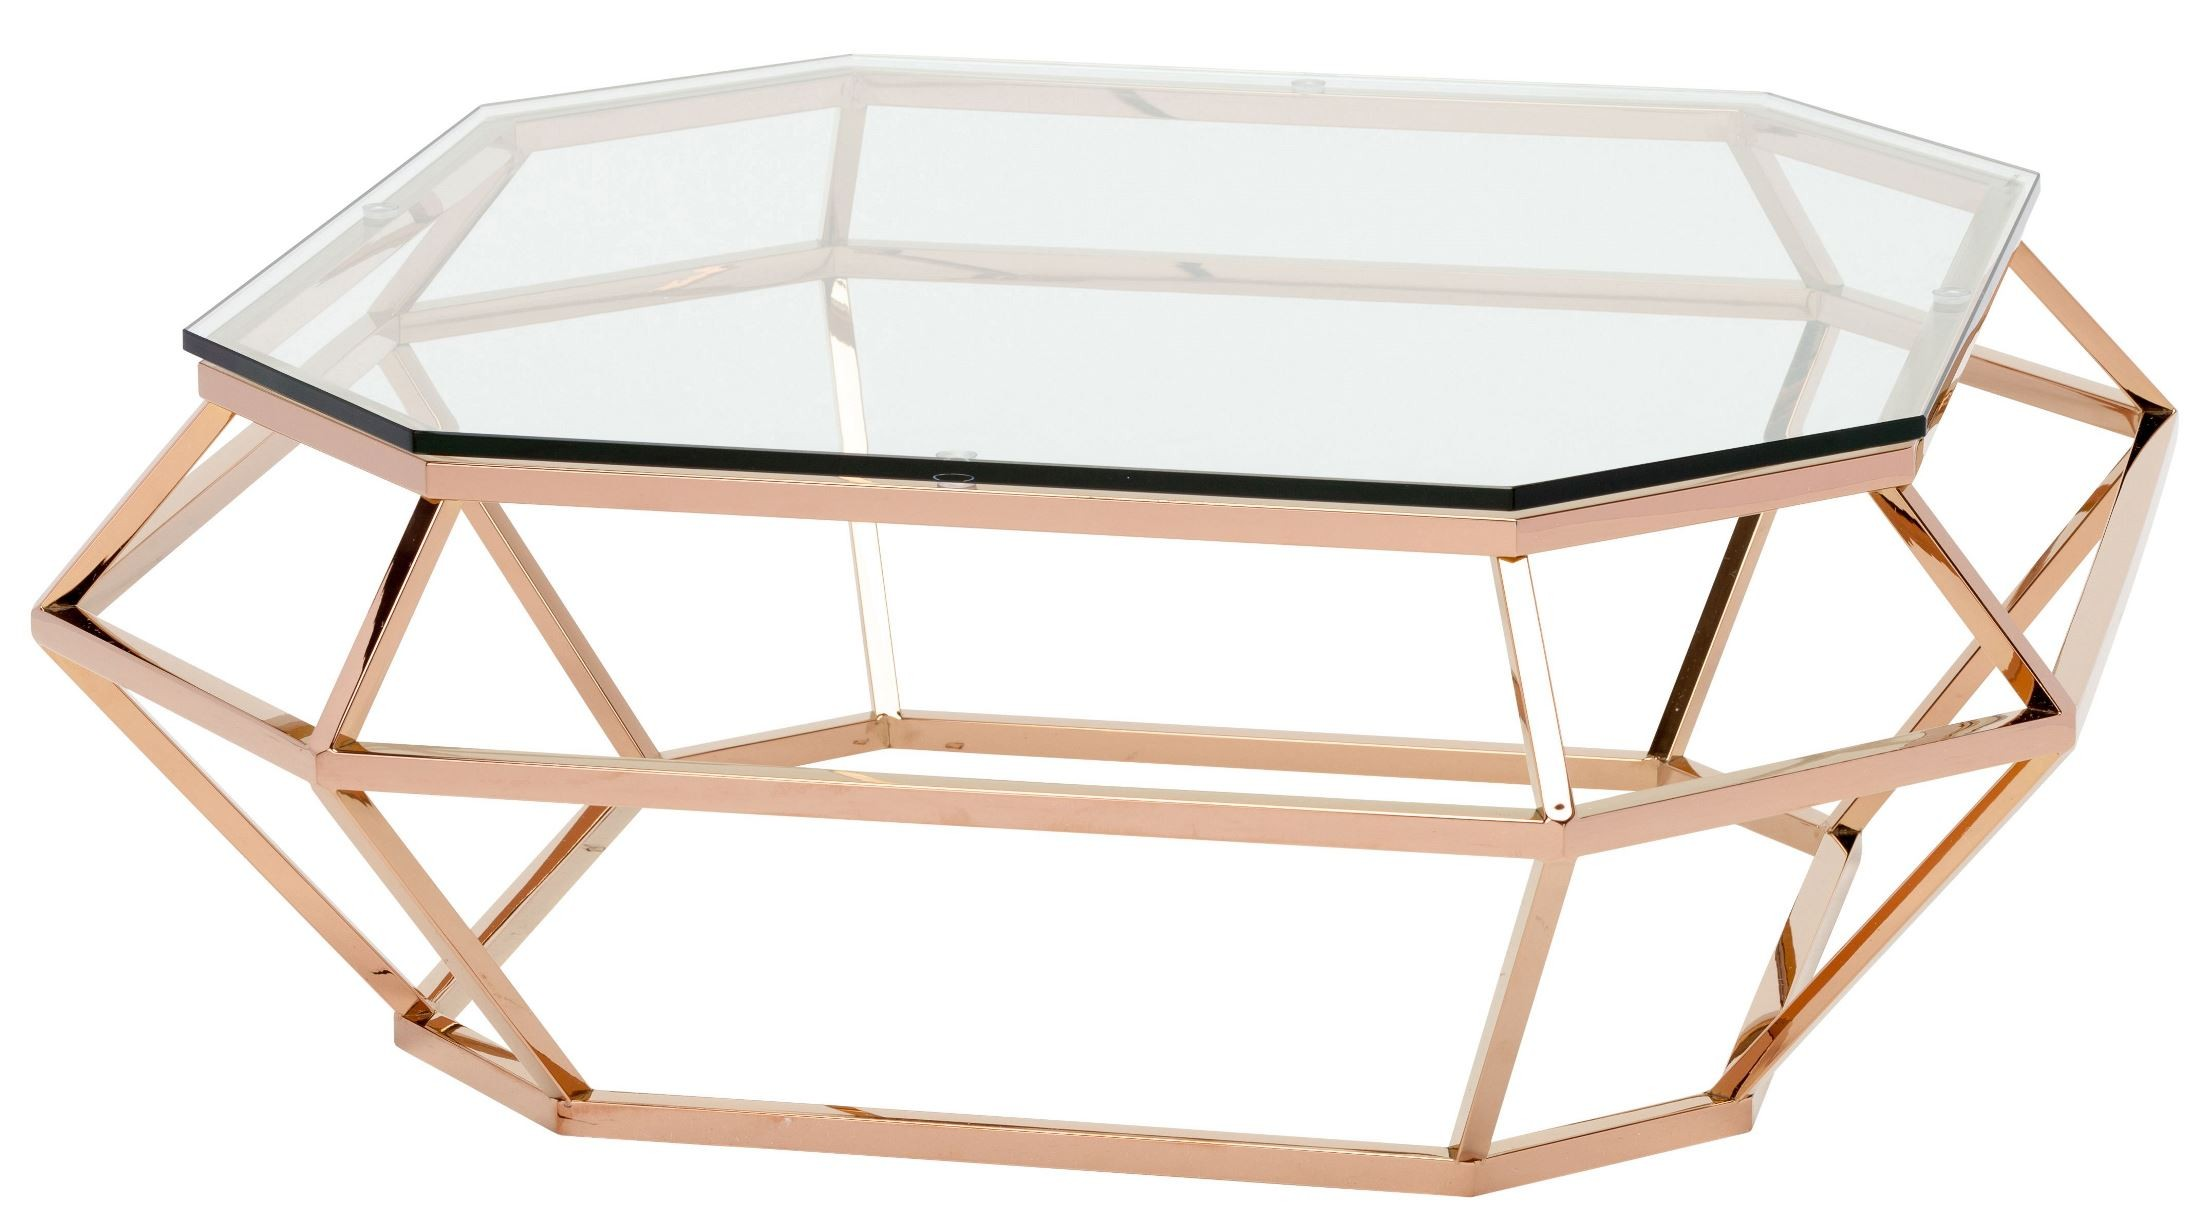 Diamond clear glass and rose gold metal square coffee table from nuevo coleman furniture Gold metal coffee table